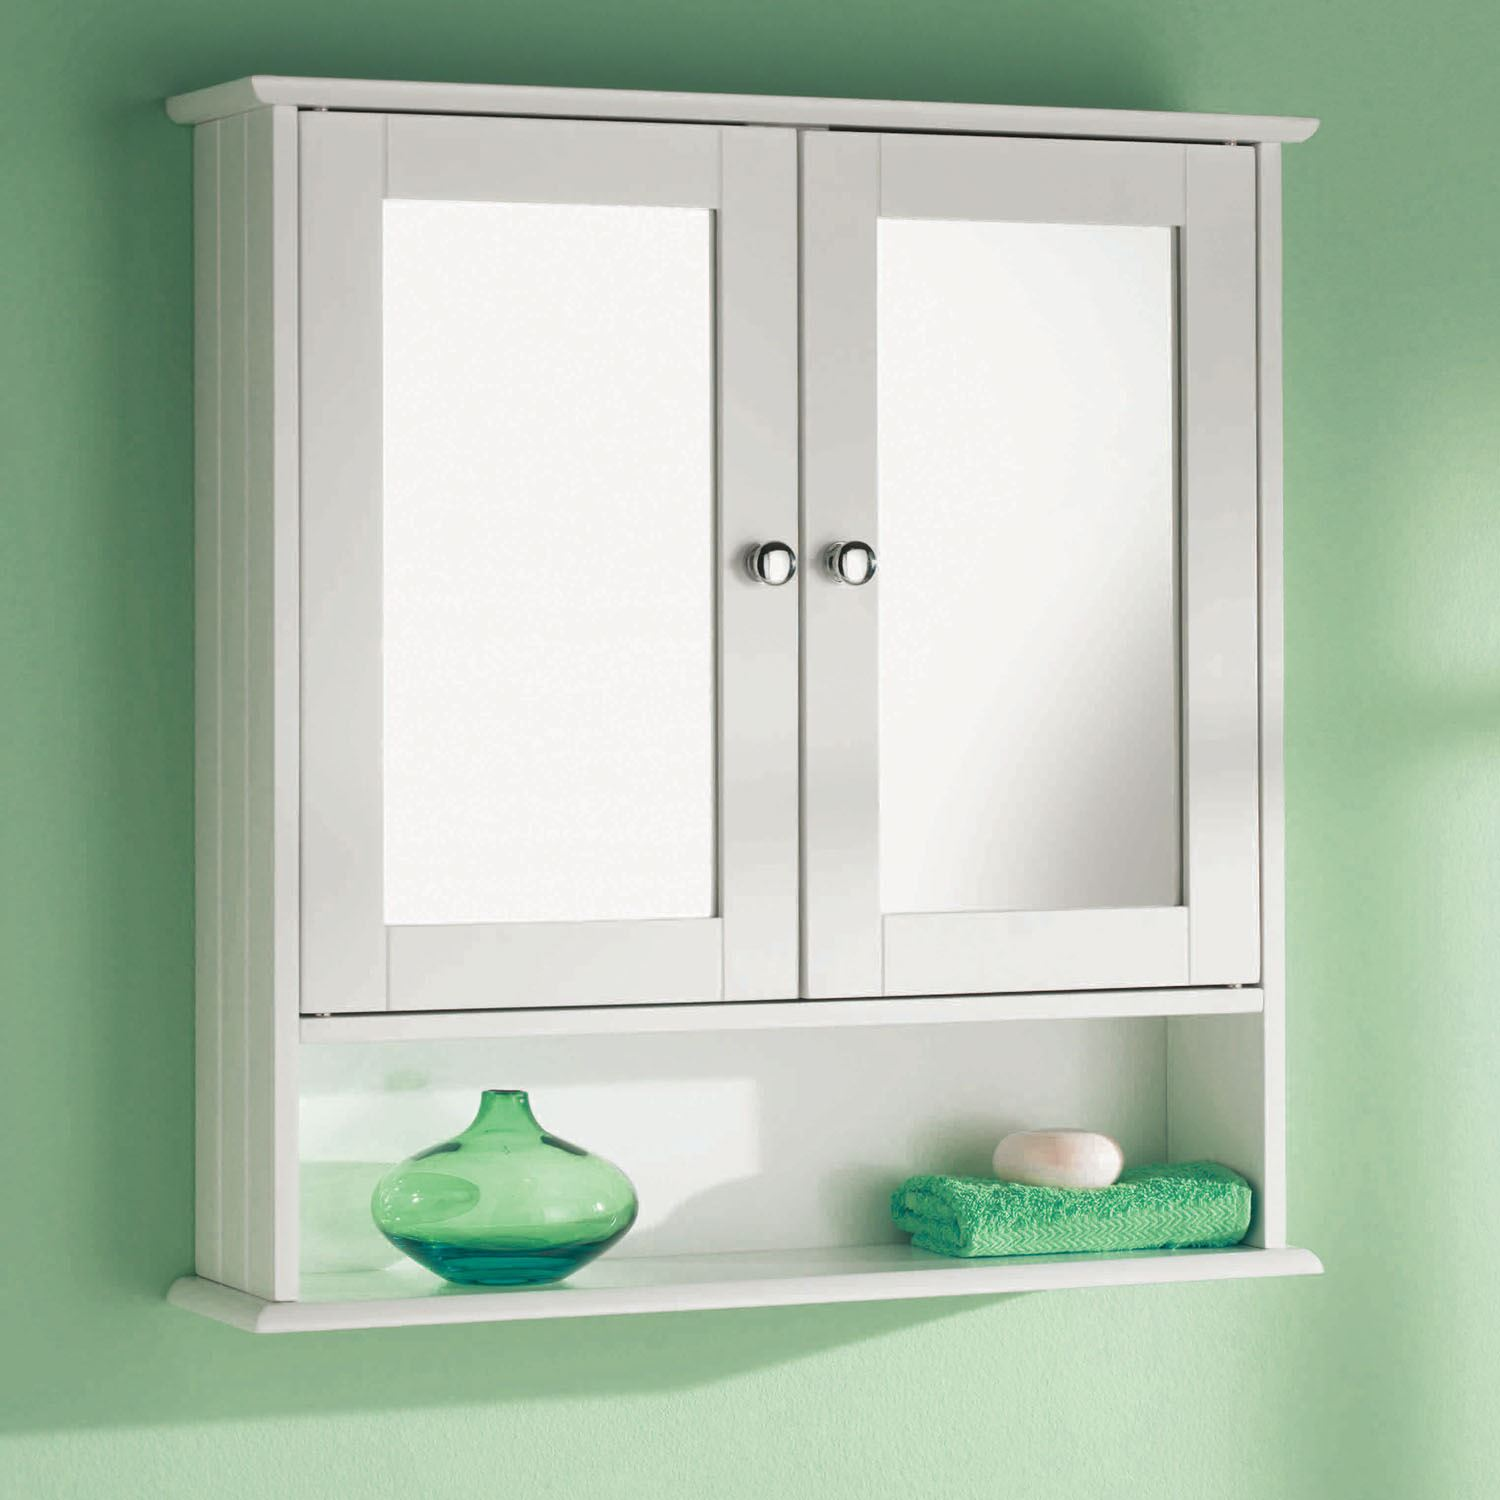 Double mirror bathroom cabinet with shelf image result for mobile responsive images description a white wall mounted